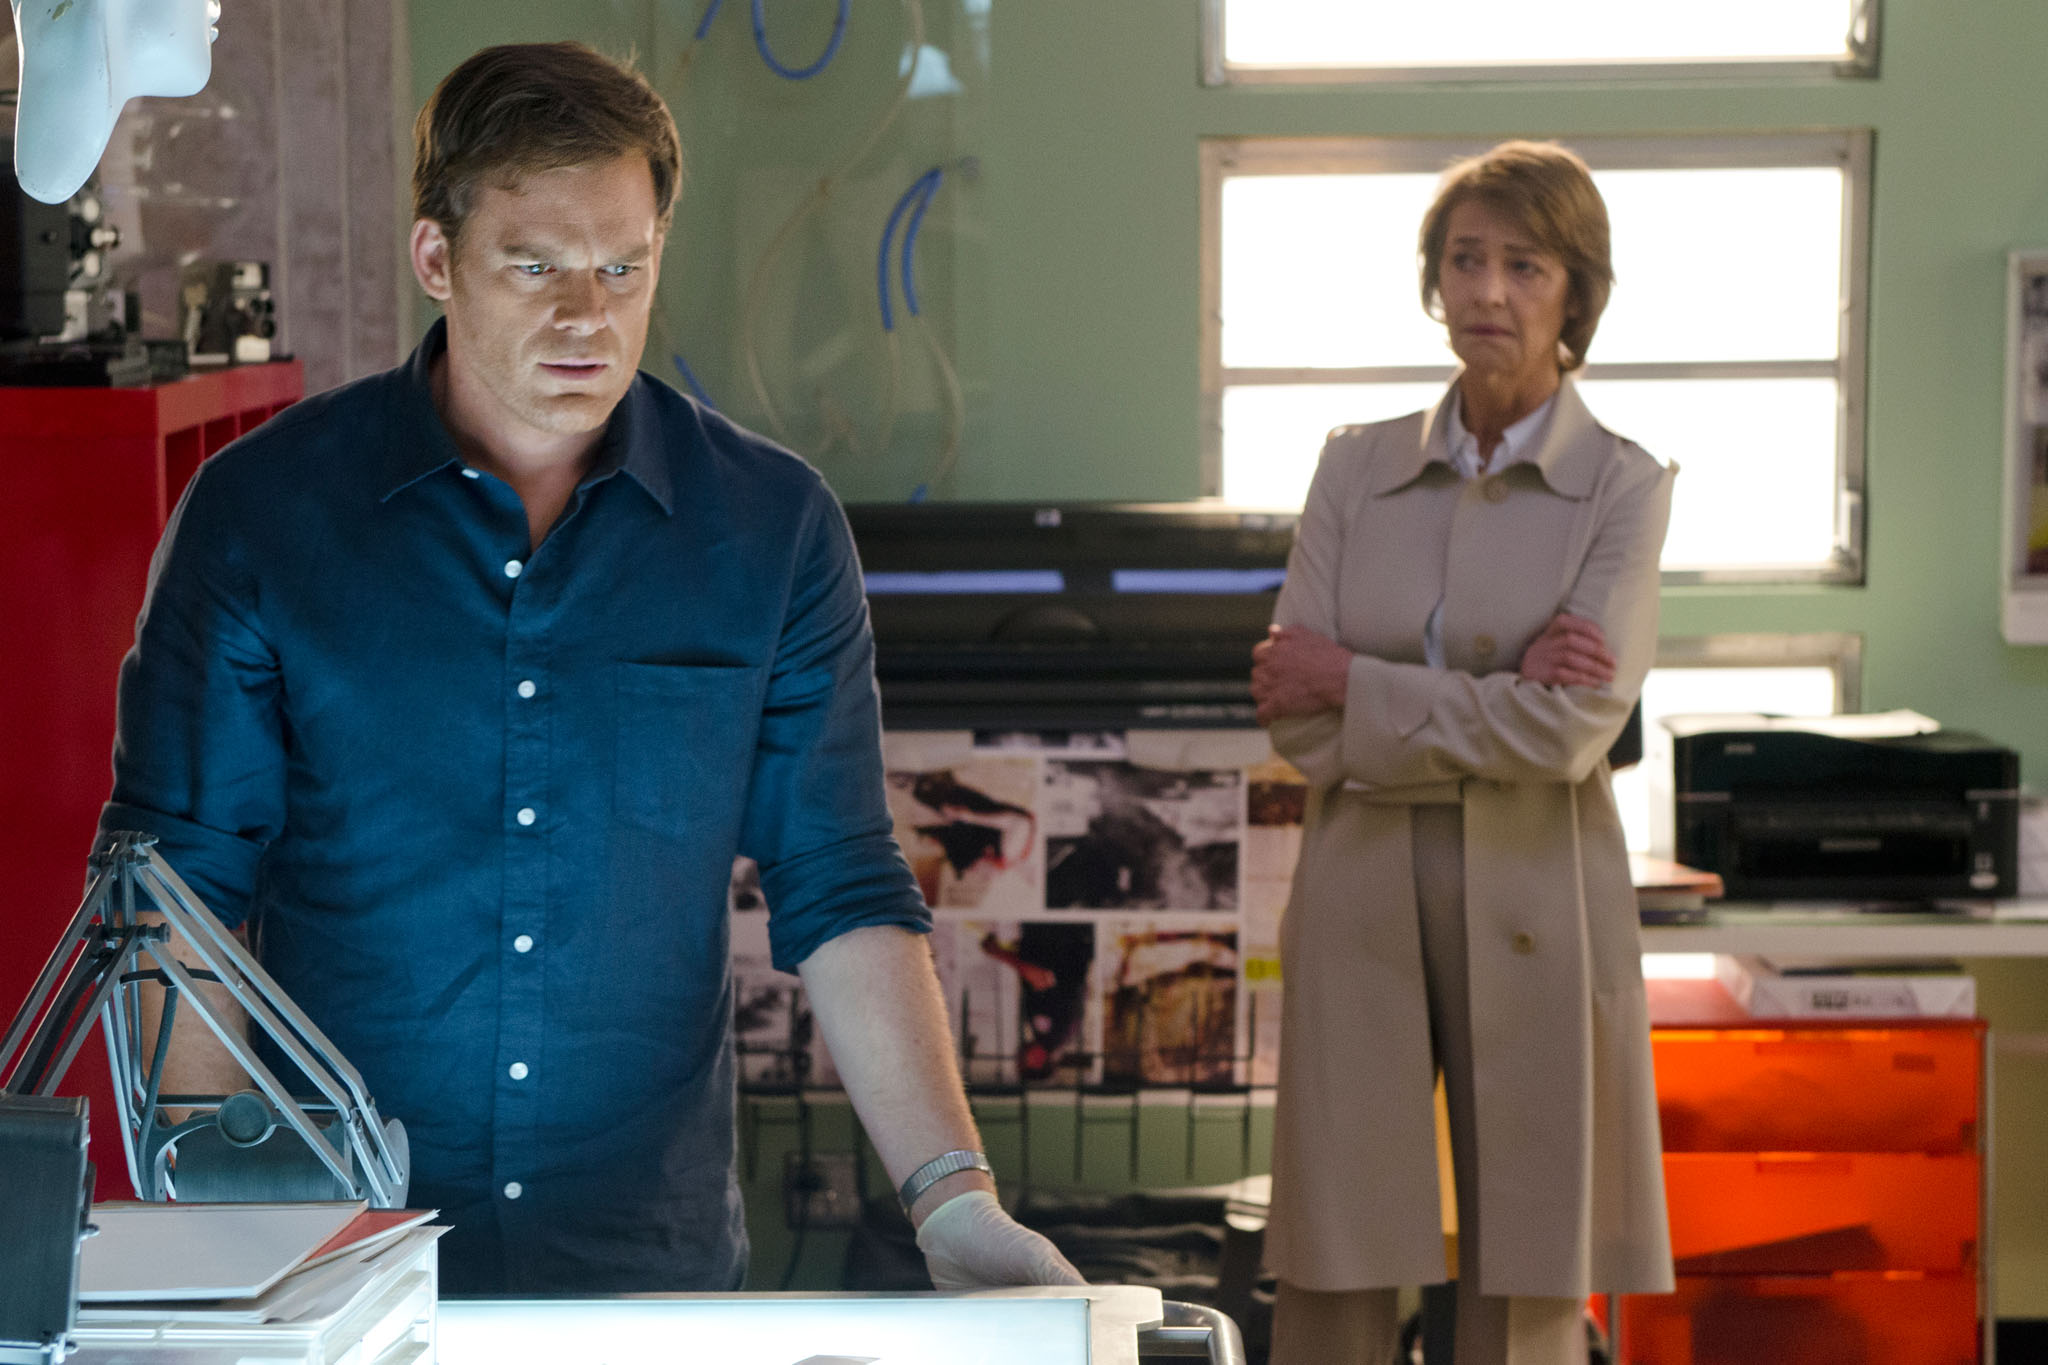 Michael C. Hall as Dexter Morgan and Charlotte Rampling as Dr. Vogel in the 'Dexter' Season 8 episode, 'Make Your Own Kind of Music.'